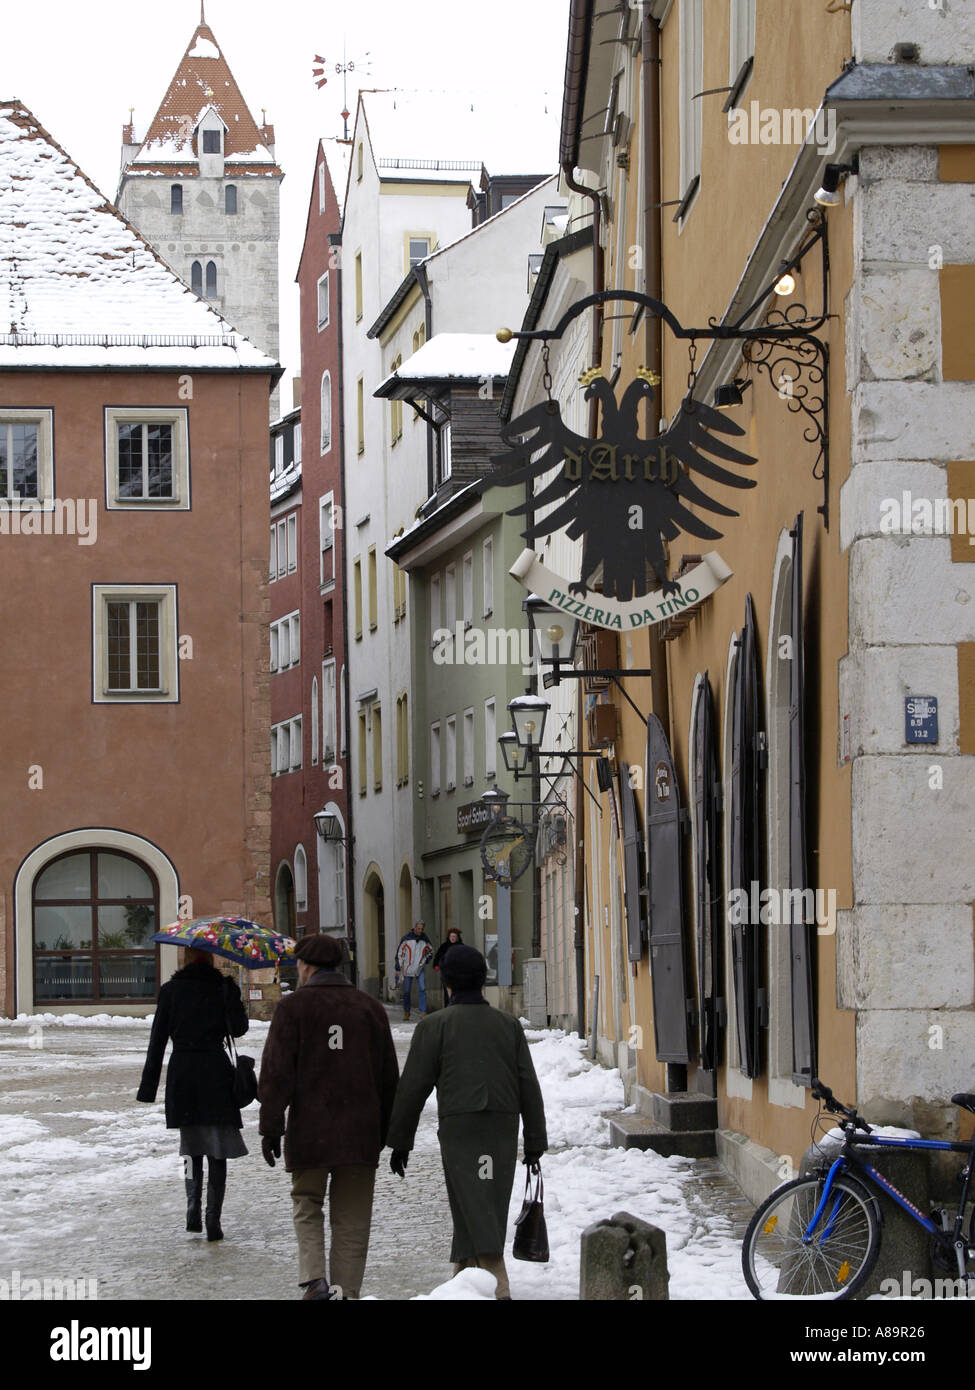 passers-by in the Old Town of Regensburg - Stock Image